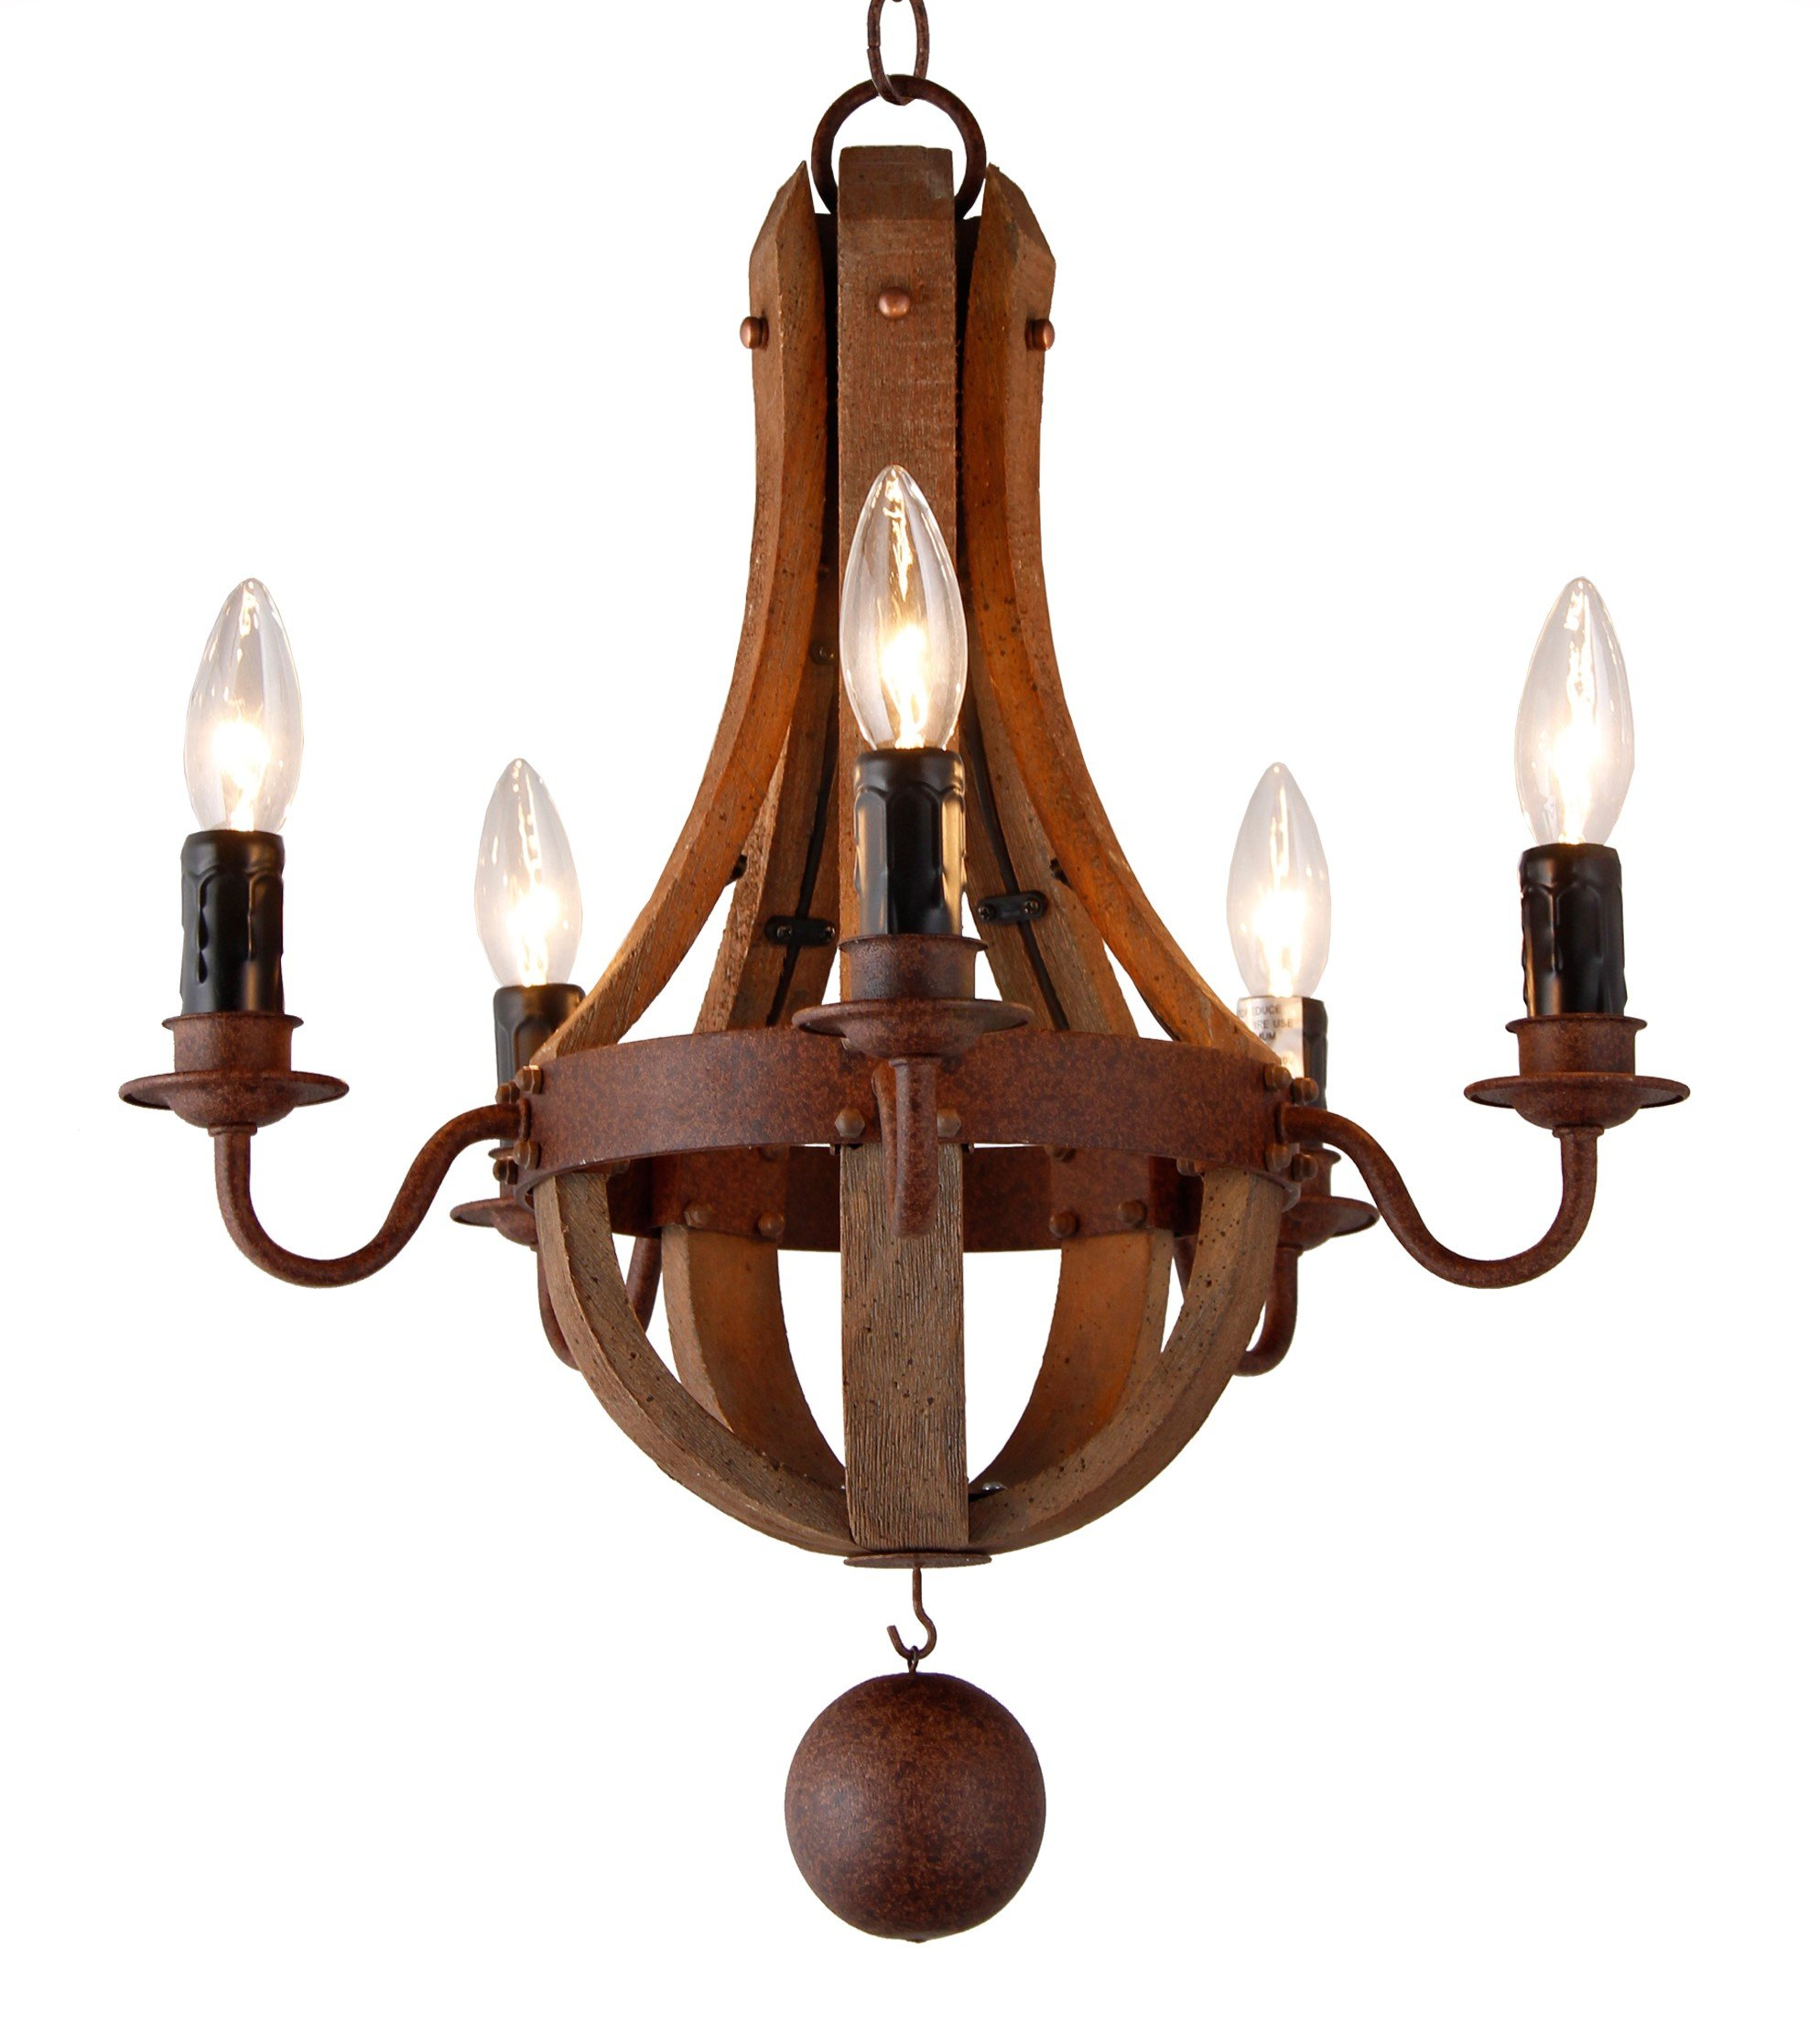 16.7 Inch Vintage French Country Wood Metal Mini Wine Barrel Chandelier (5 Light Heads) Living Dinning Kitchen Lamp